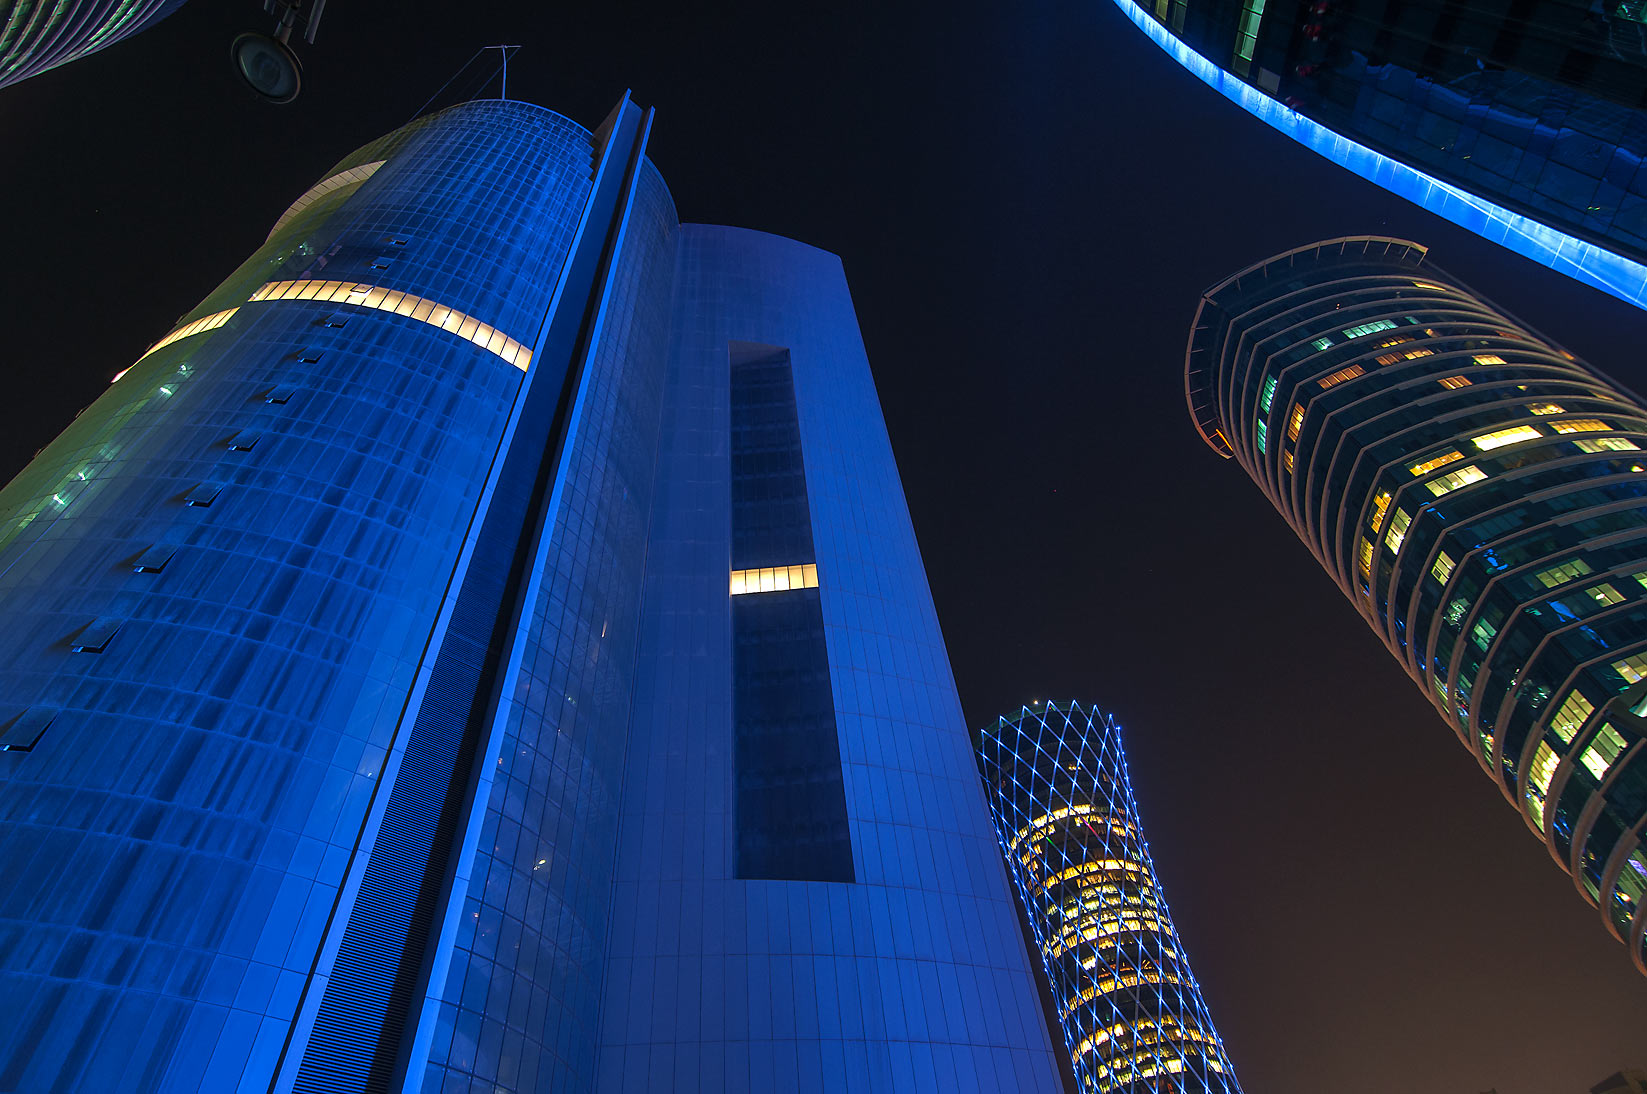 Blue dusty tower in West Bay at evening. Doha, Qatar